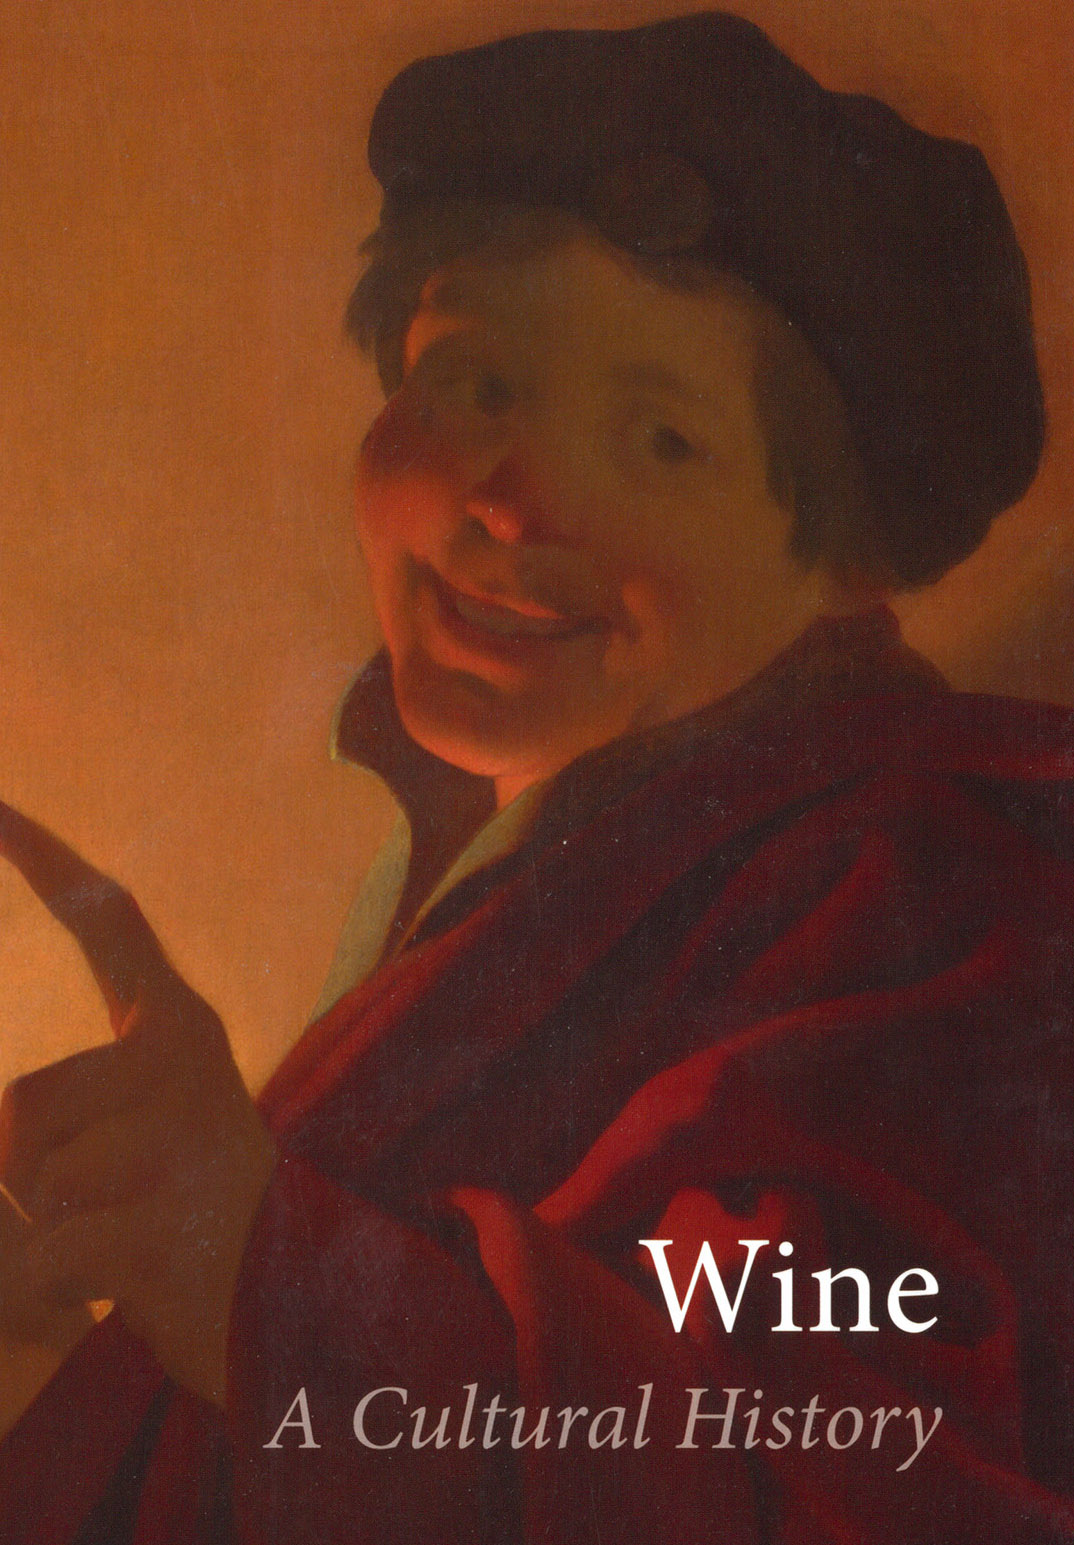 Wine: A Cultural History